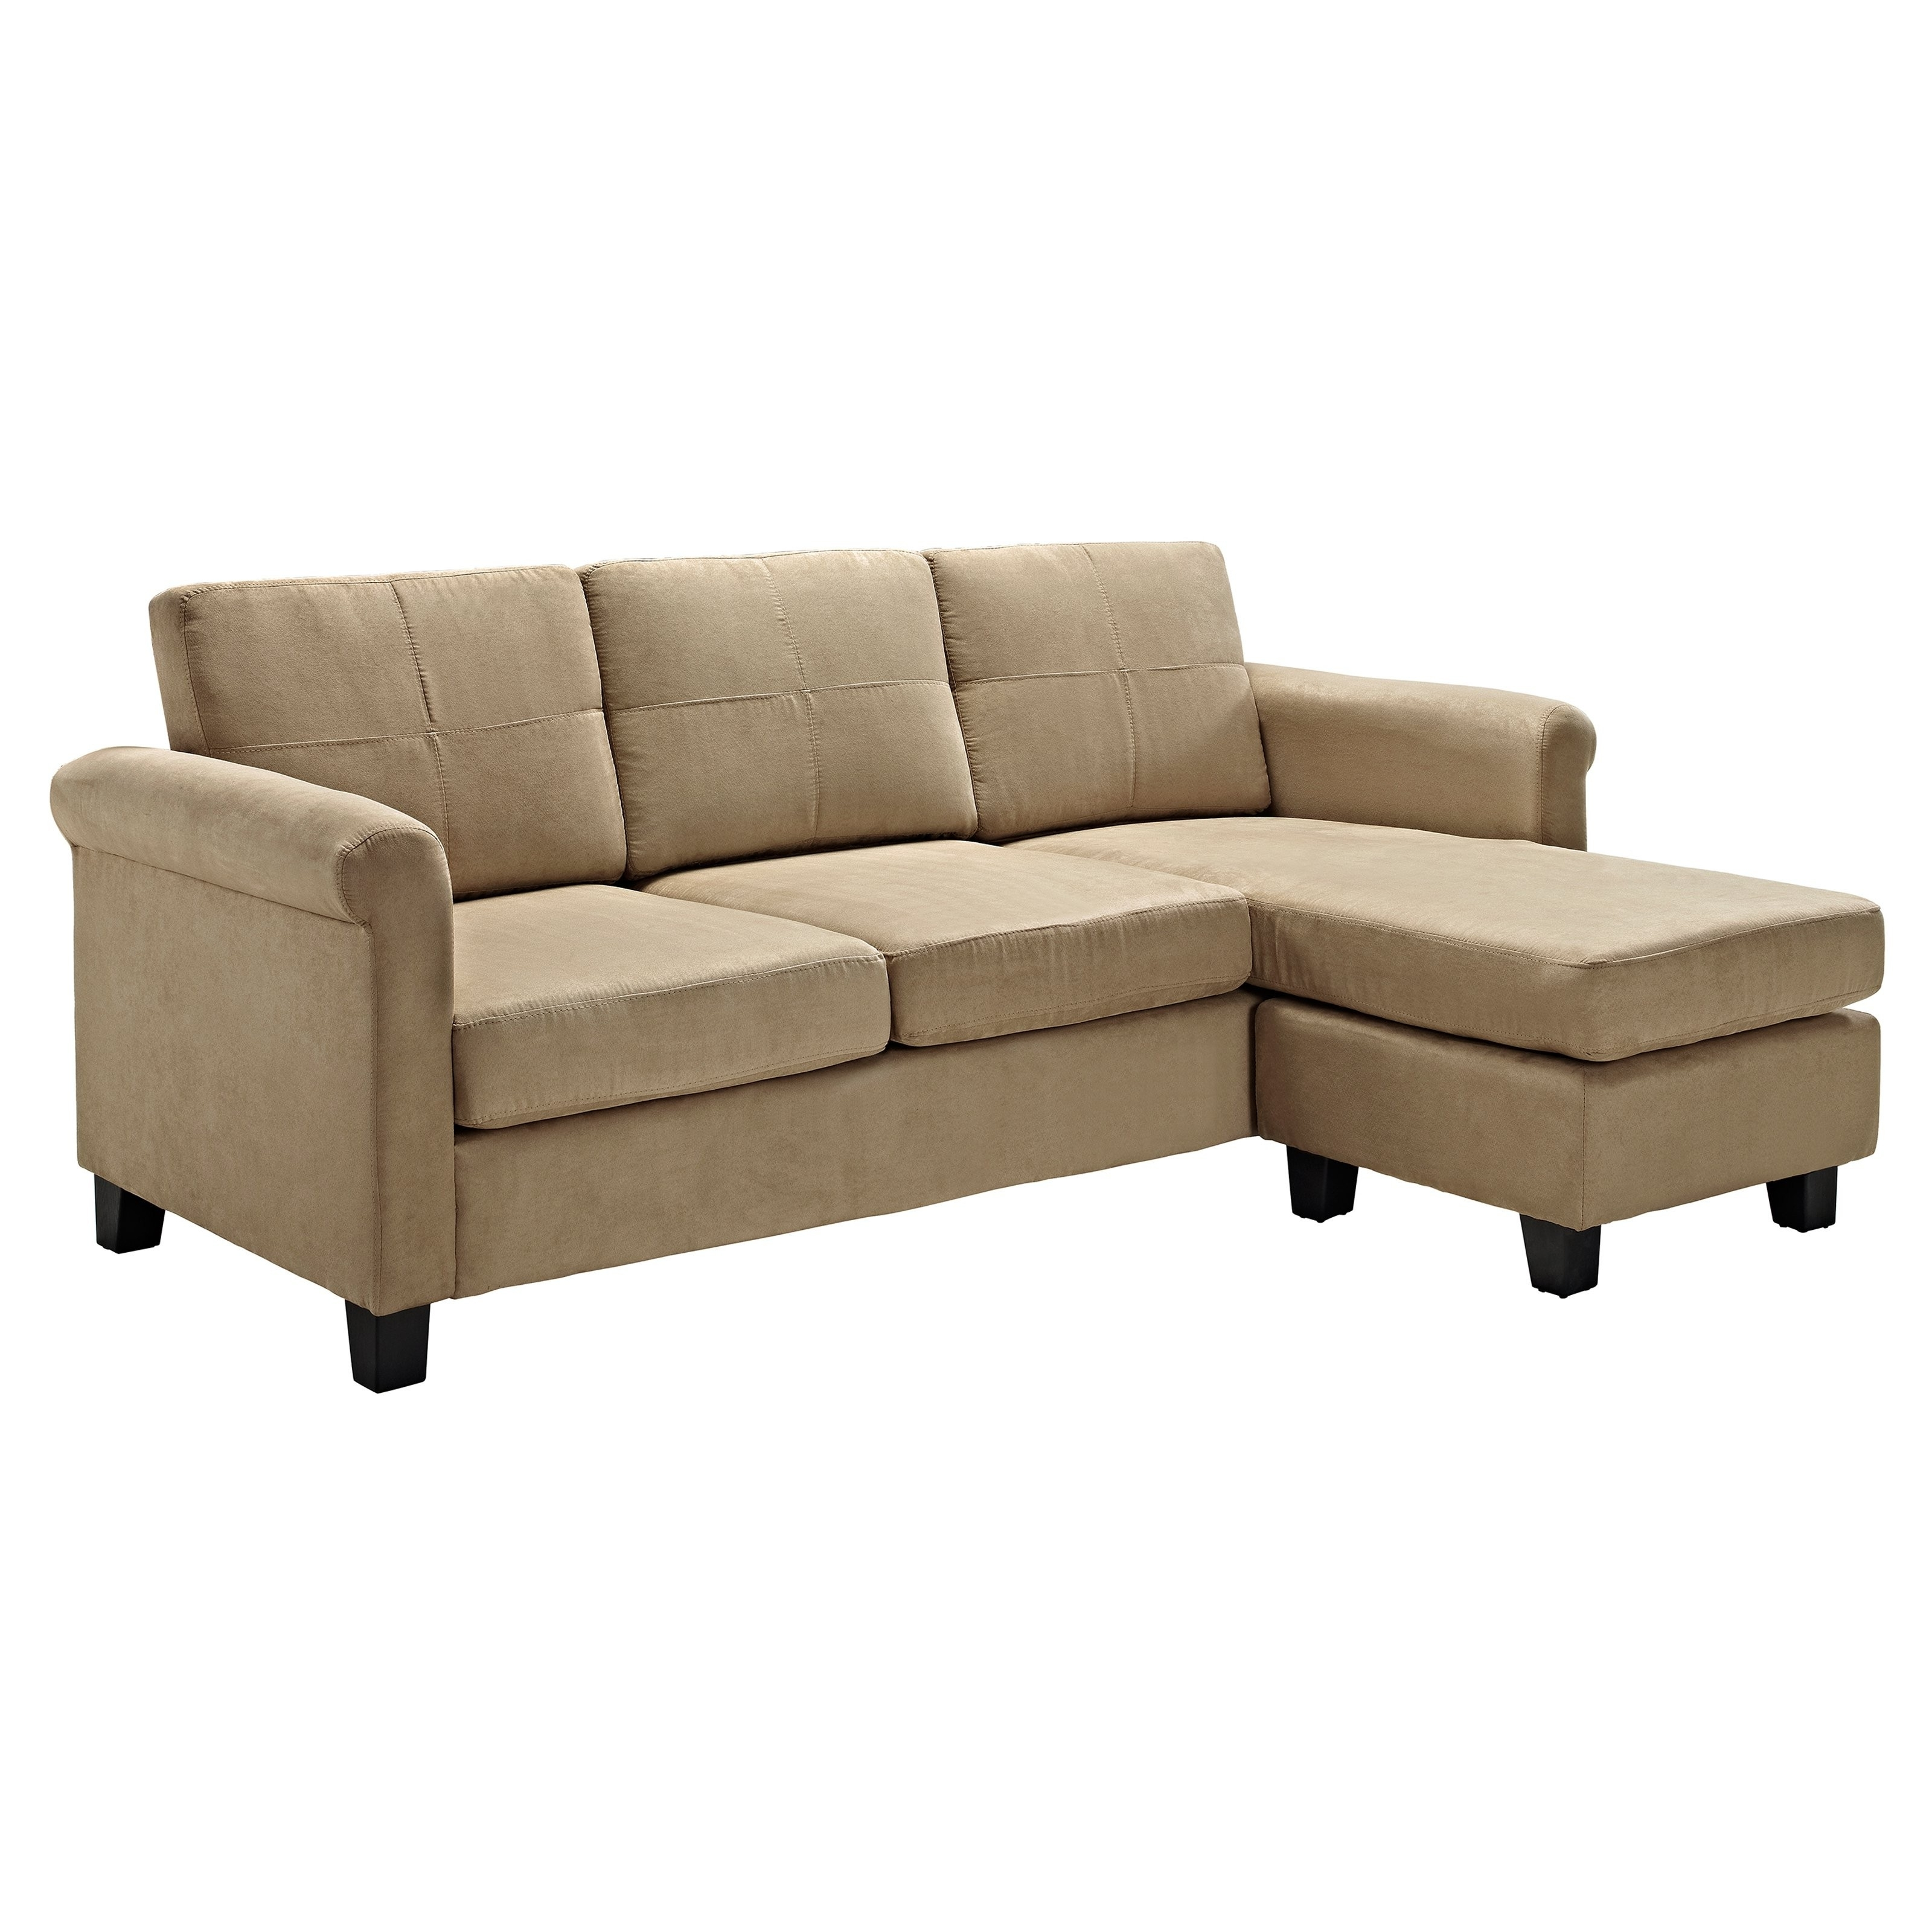 Beautiful Target Sectional Sofa – Buildsimplehome Throughout Favorite Target Sectional Sofas (View 3 of 15)